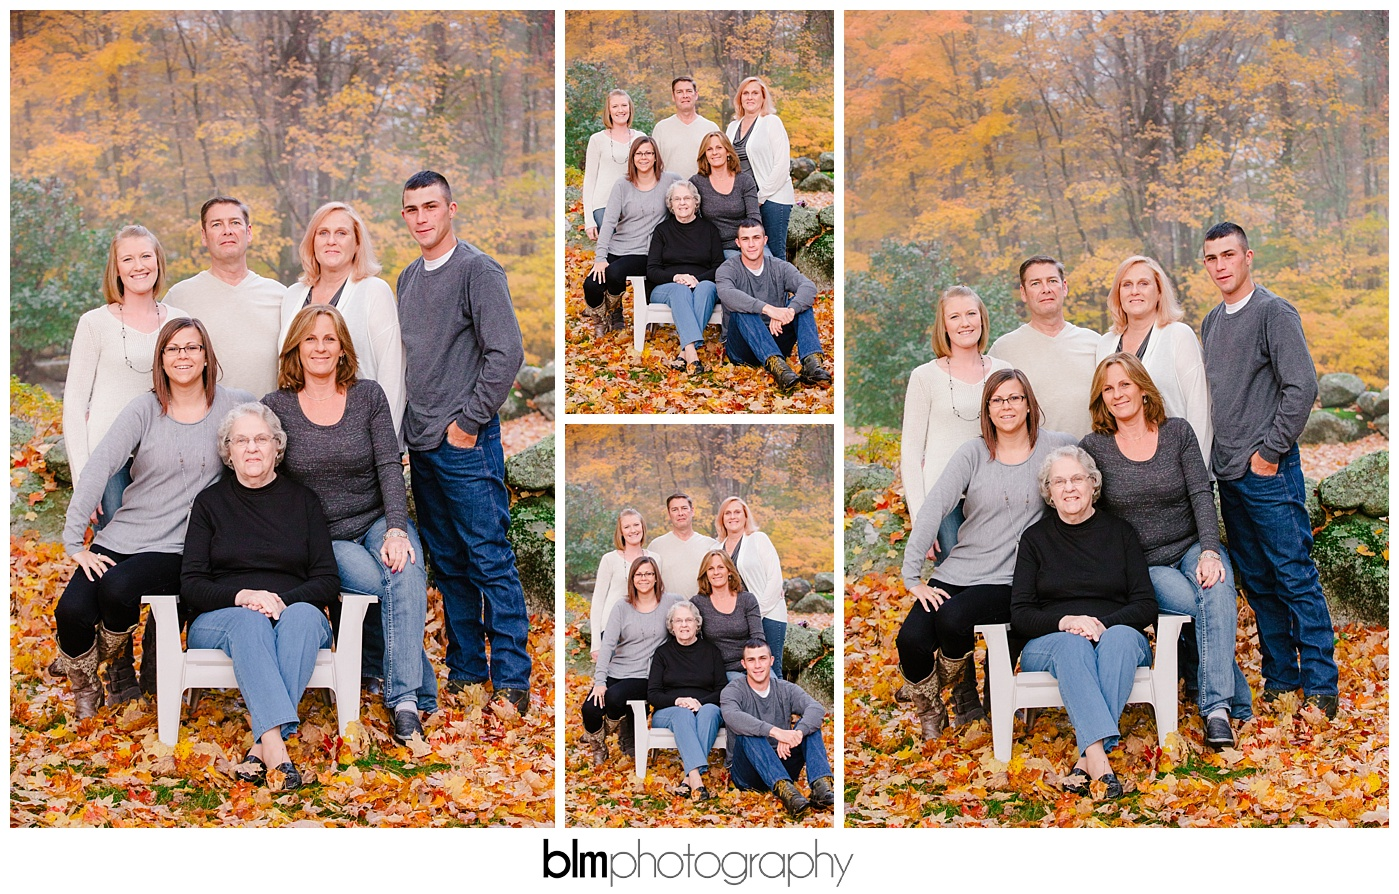 2016,20161018,9159,Ashley,BLM,BLM_9159,Boutwell Family,Boutwell-Family-Portraits,Brianna Morrissey,CCF,Cody,Cold Comfort Farm,Home,Mark,Morgan,NH,October,Outdoor,Personal,Pet,Peterborough,Photographer,Photography,Portrait,Sandy,Terry,